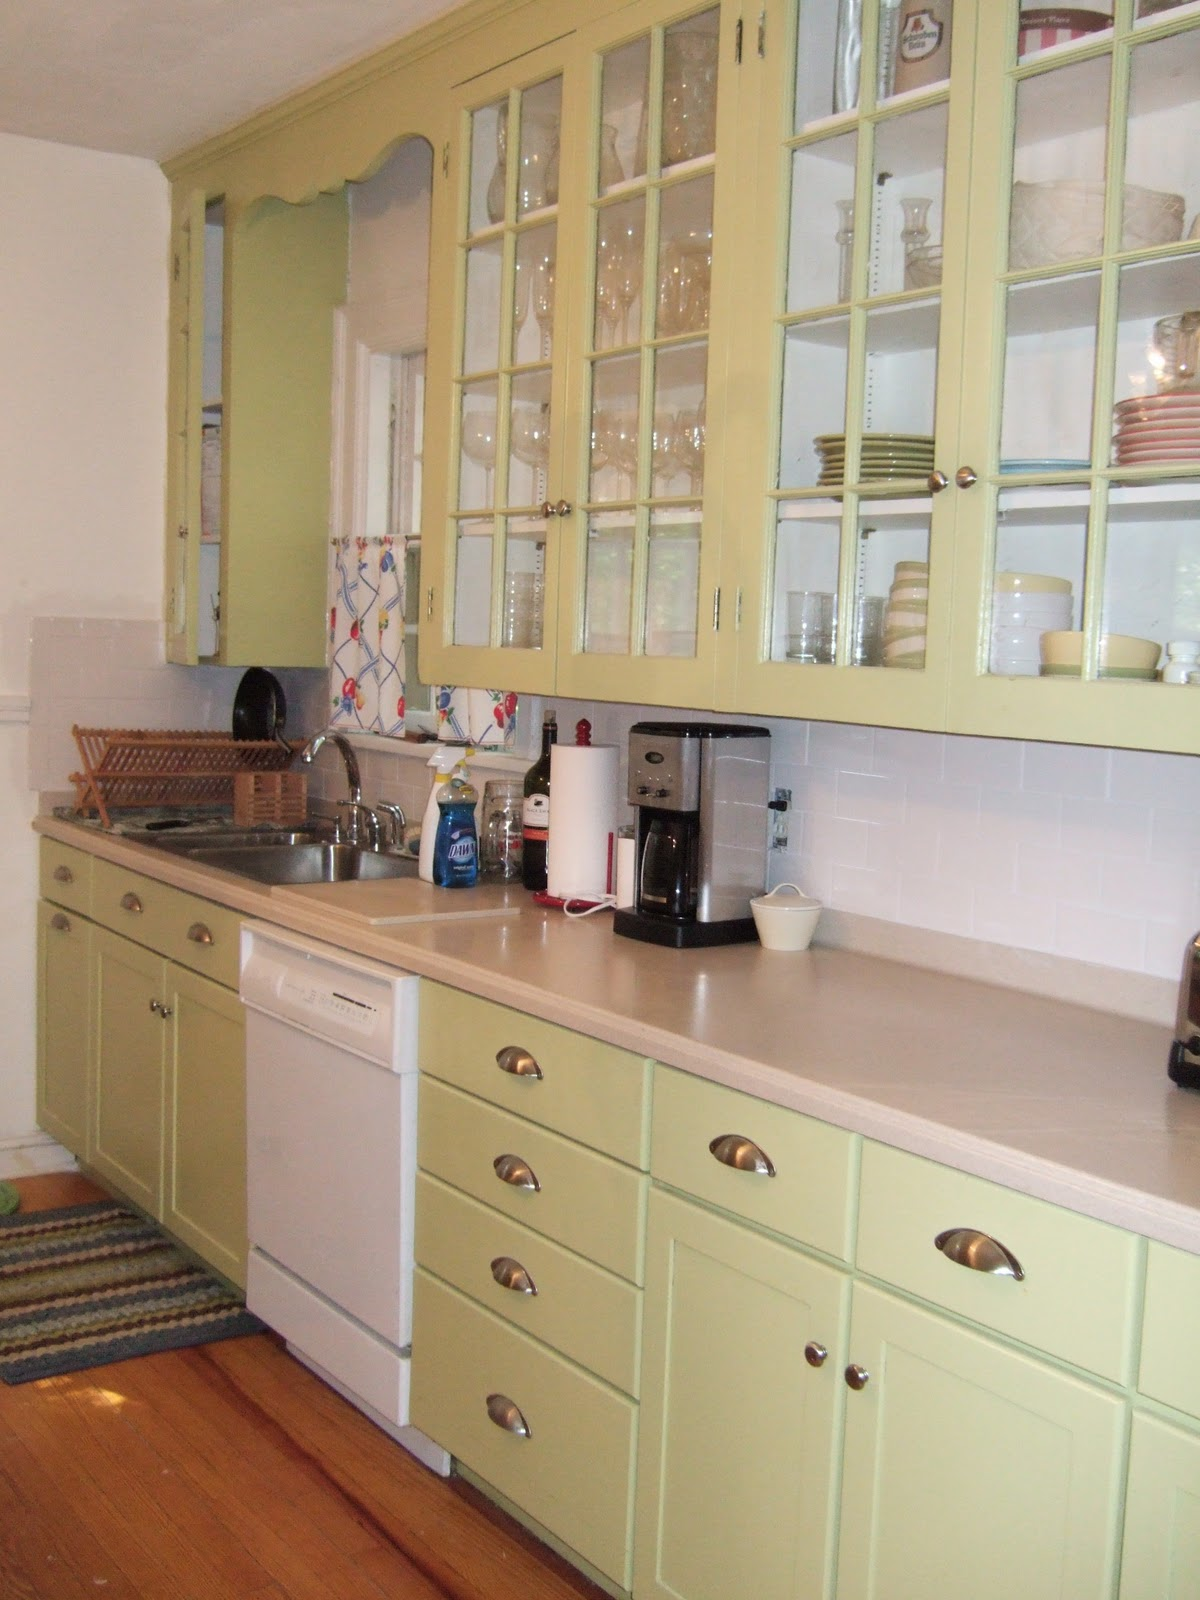 1940s kitchen cabinets images for 1940s kitchen cabinets